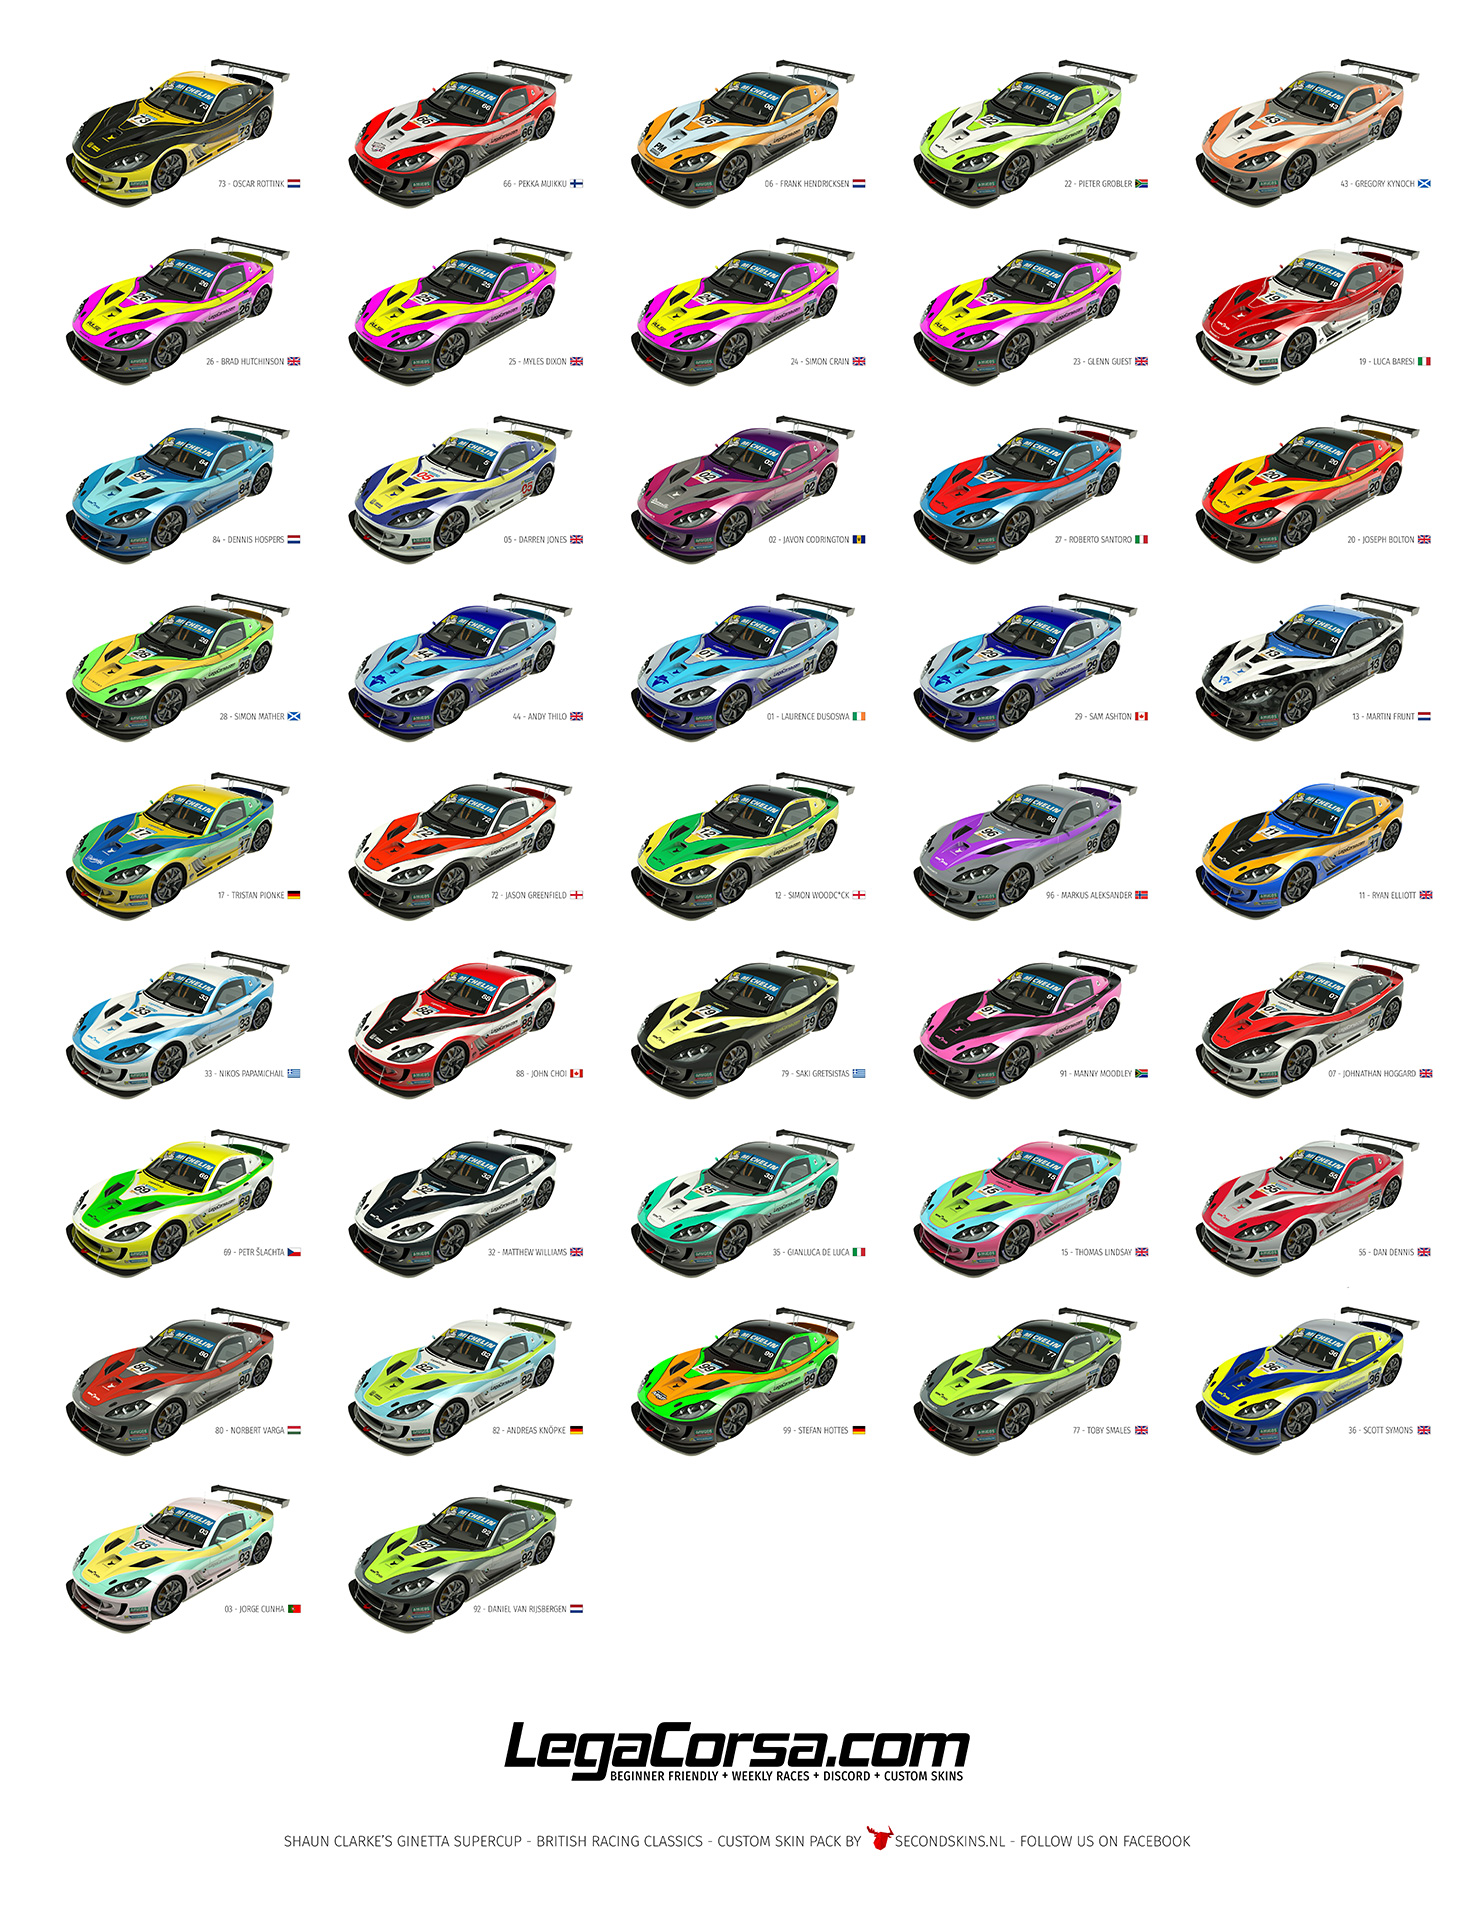 ginetta_supercup_know_your_enemy_thumb.jpg